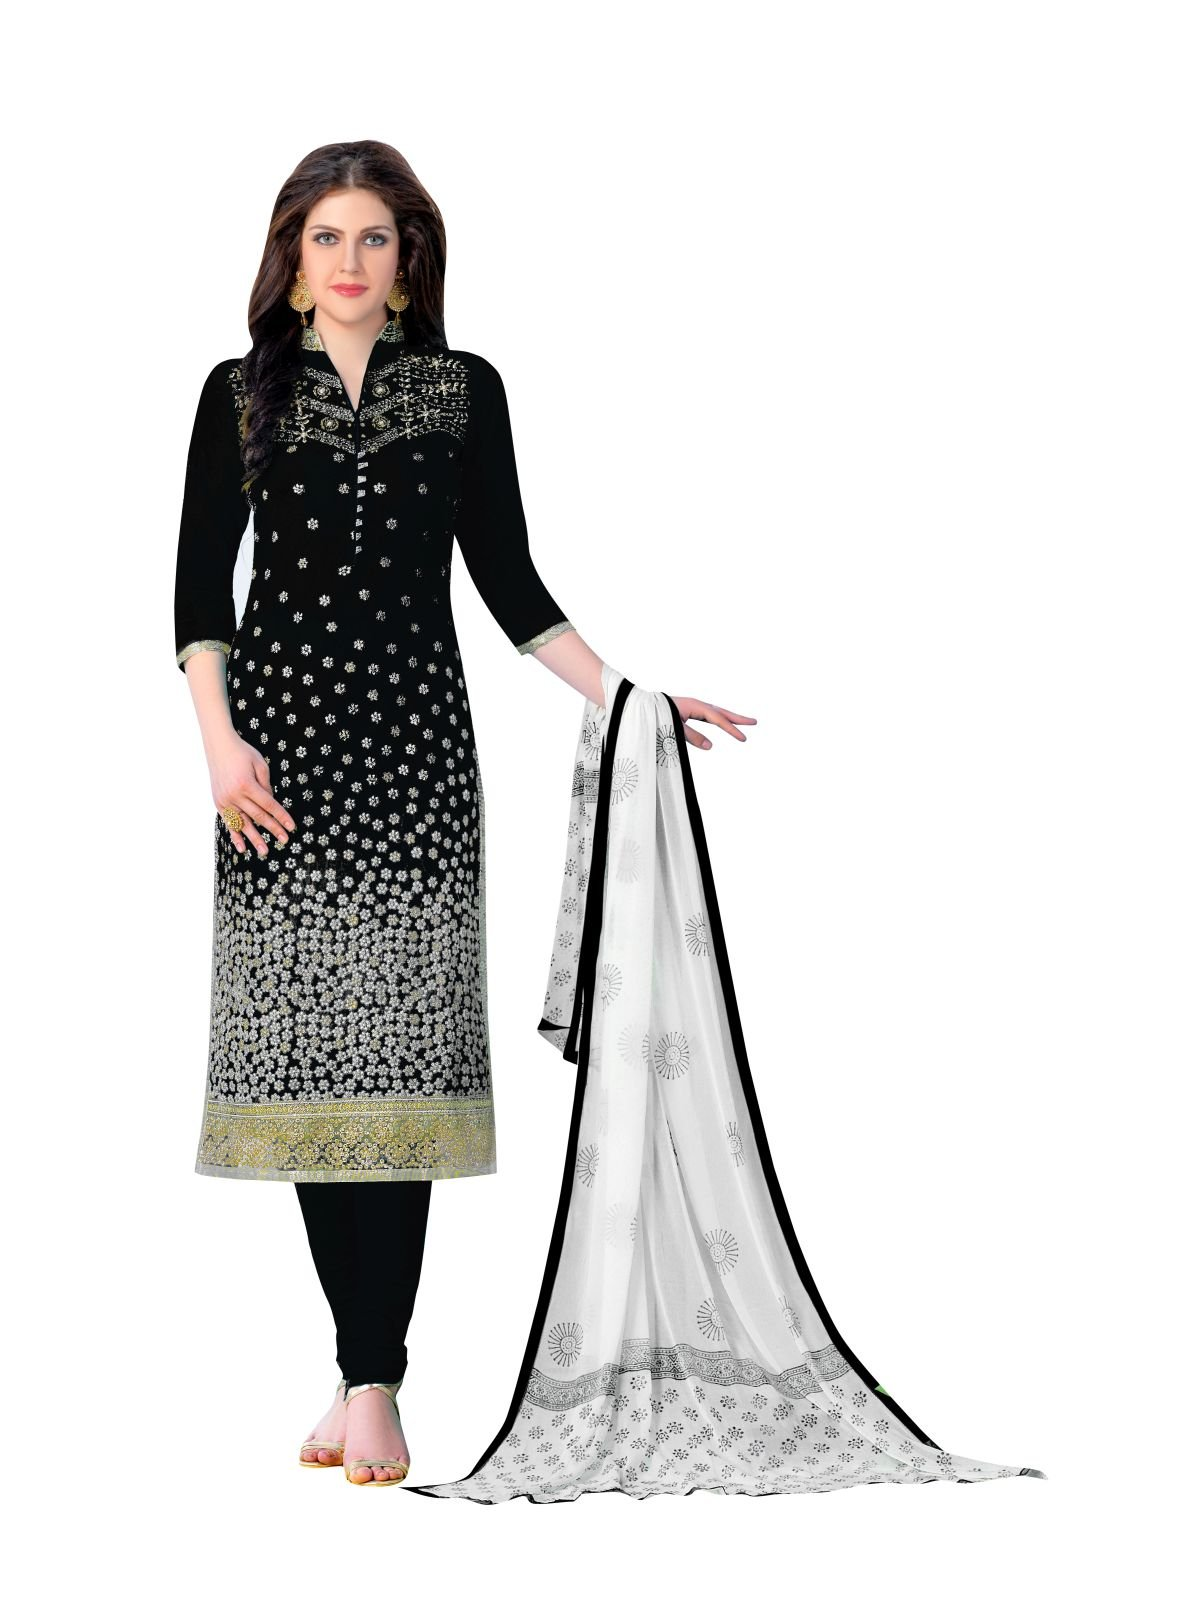 Areum Black Colored Pure Heavy Glass Cotton Embroidered Un-Stitched Dress Material For Women